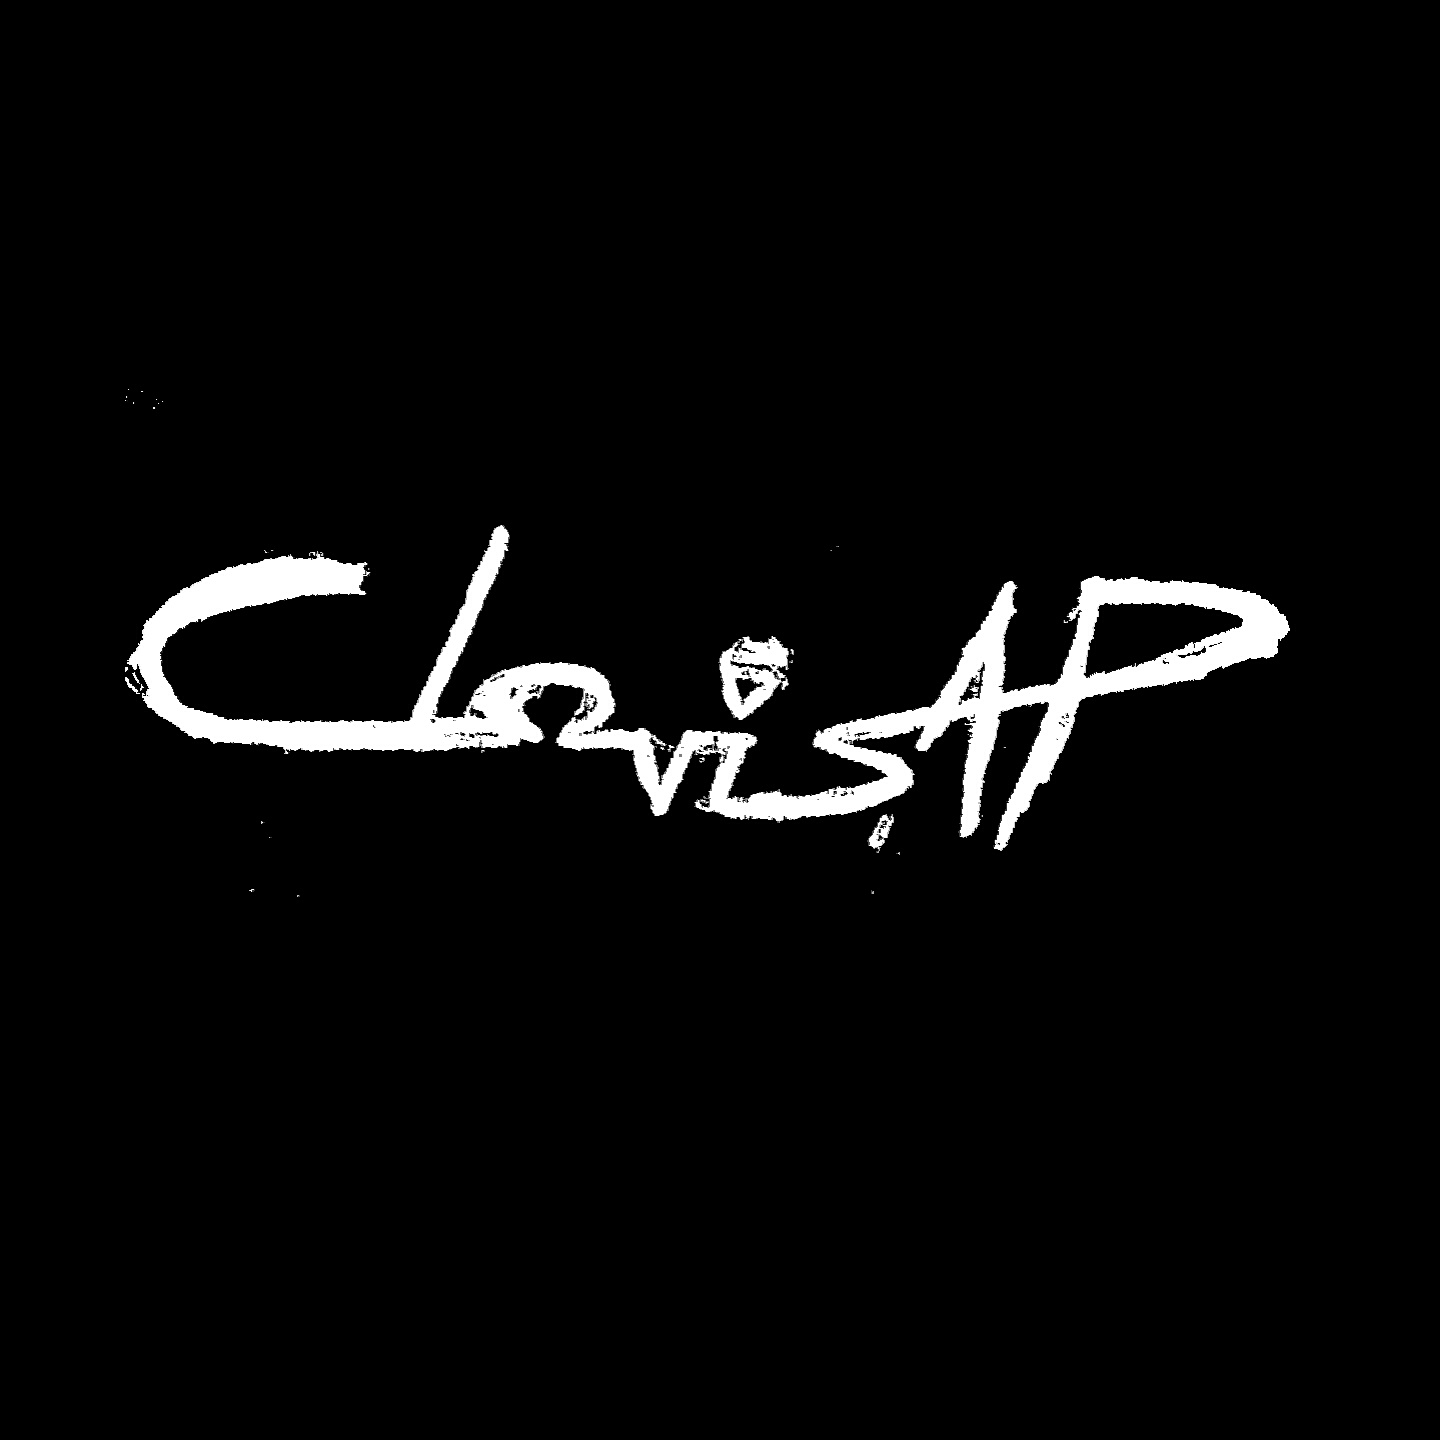 Clovis AP TheArtist | Inspire And Get Inspired . All Rights Reserved